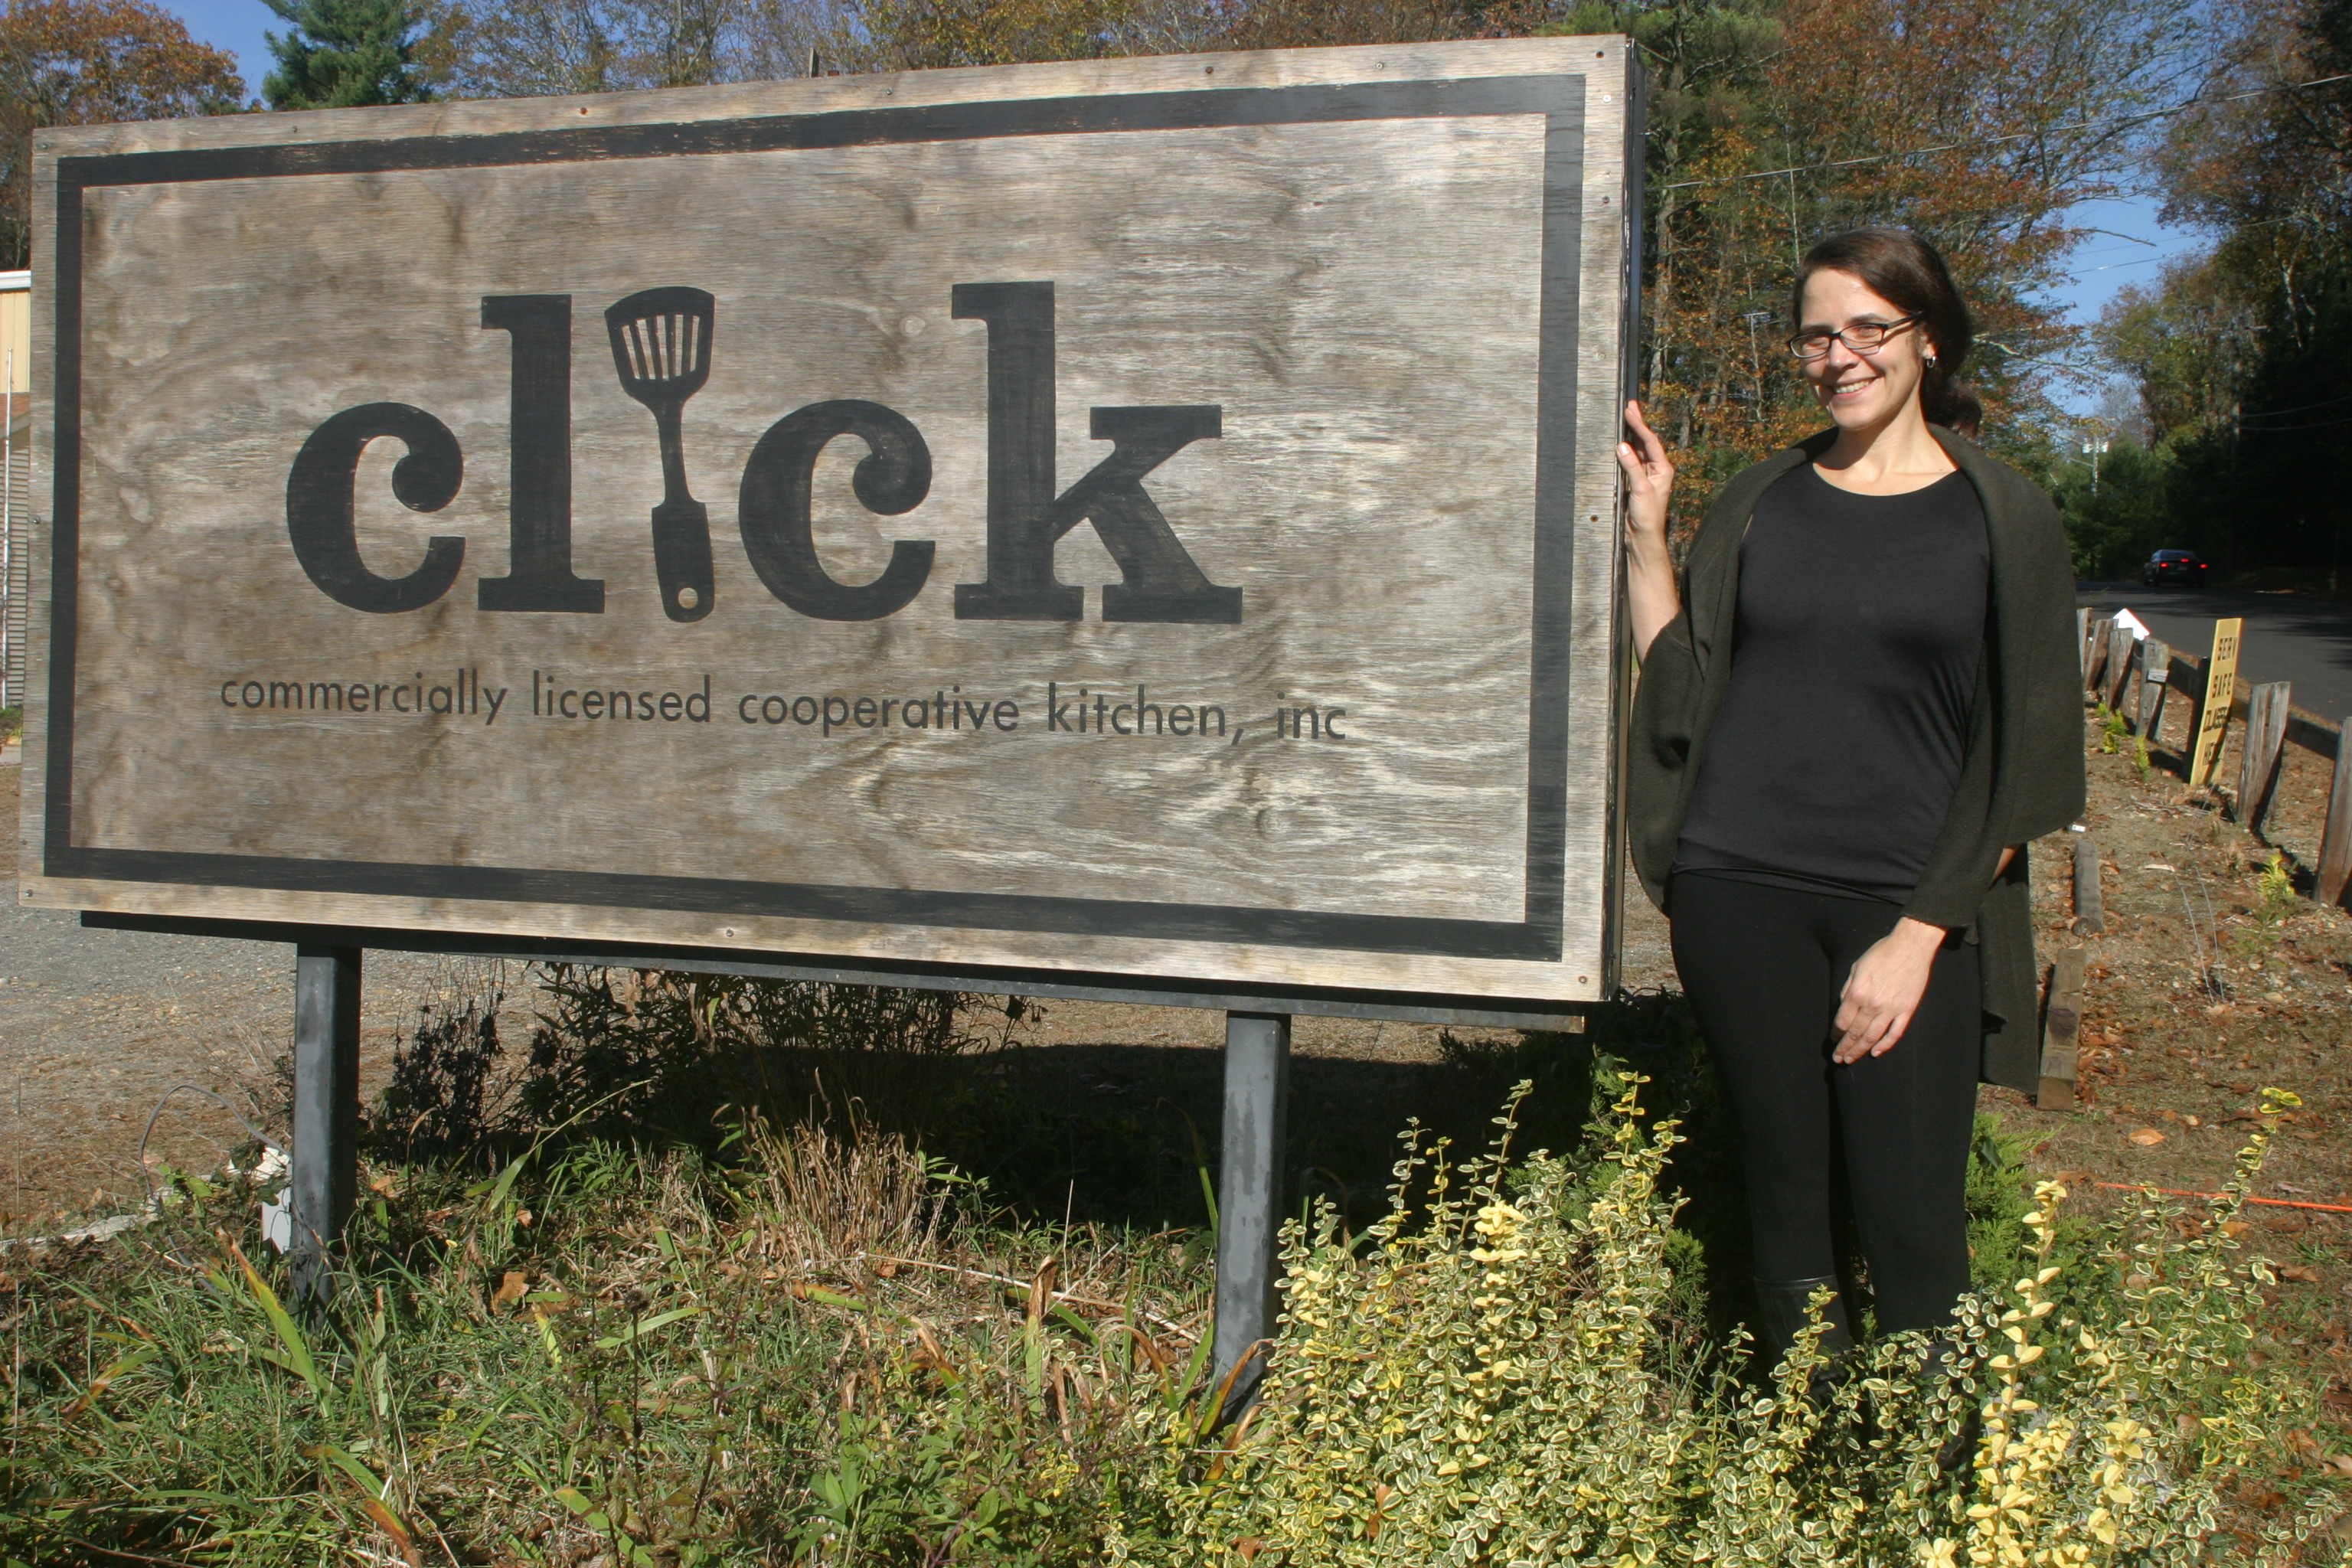 Rachael LaPorte, kitchen manager of CLiCK